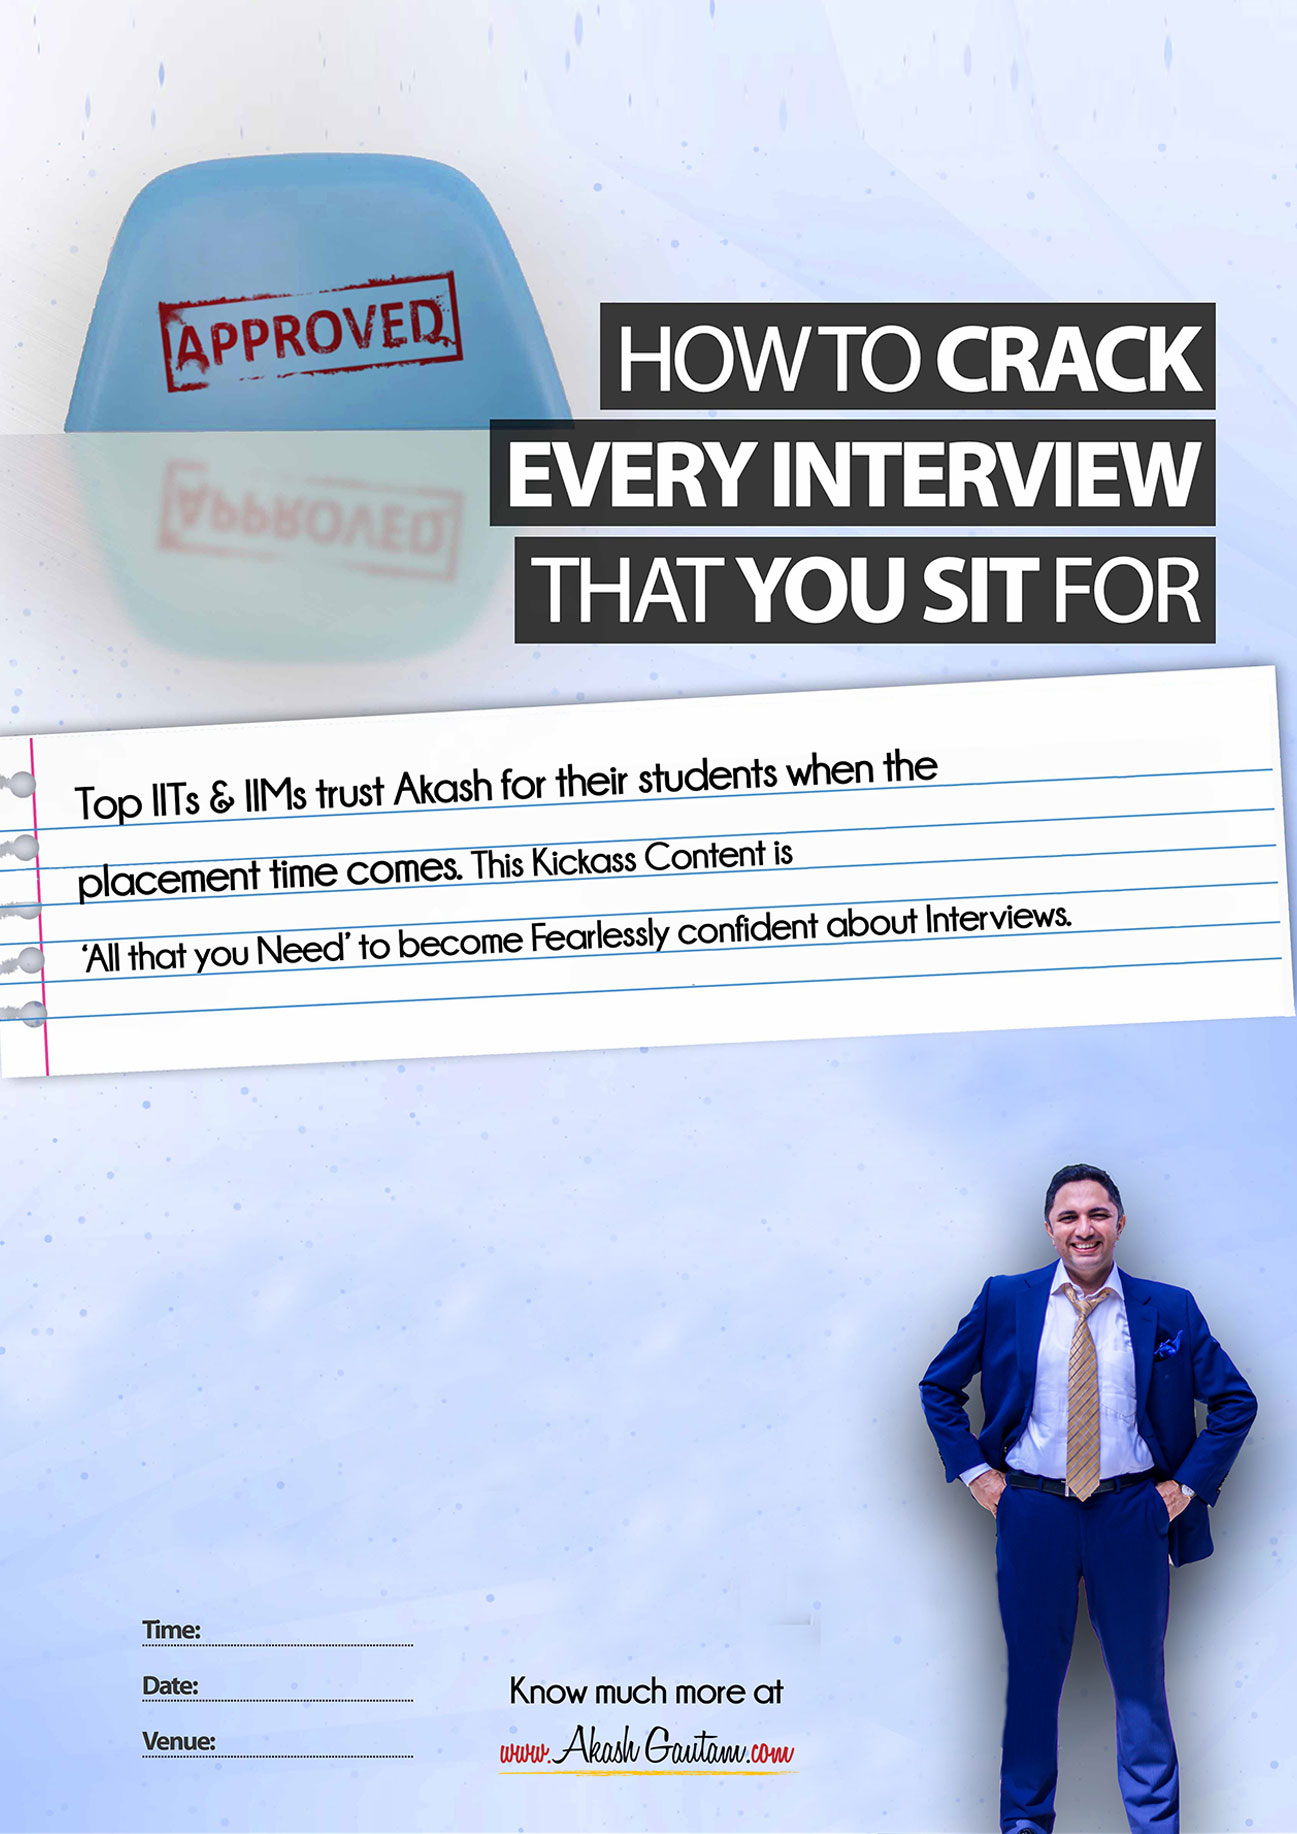 How to crack every interview that you sit for by Akash Gautam Motivational Speaker for youth and students.